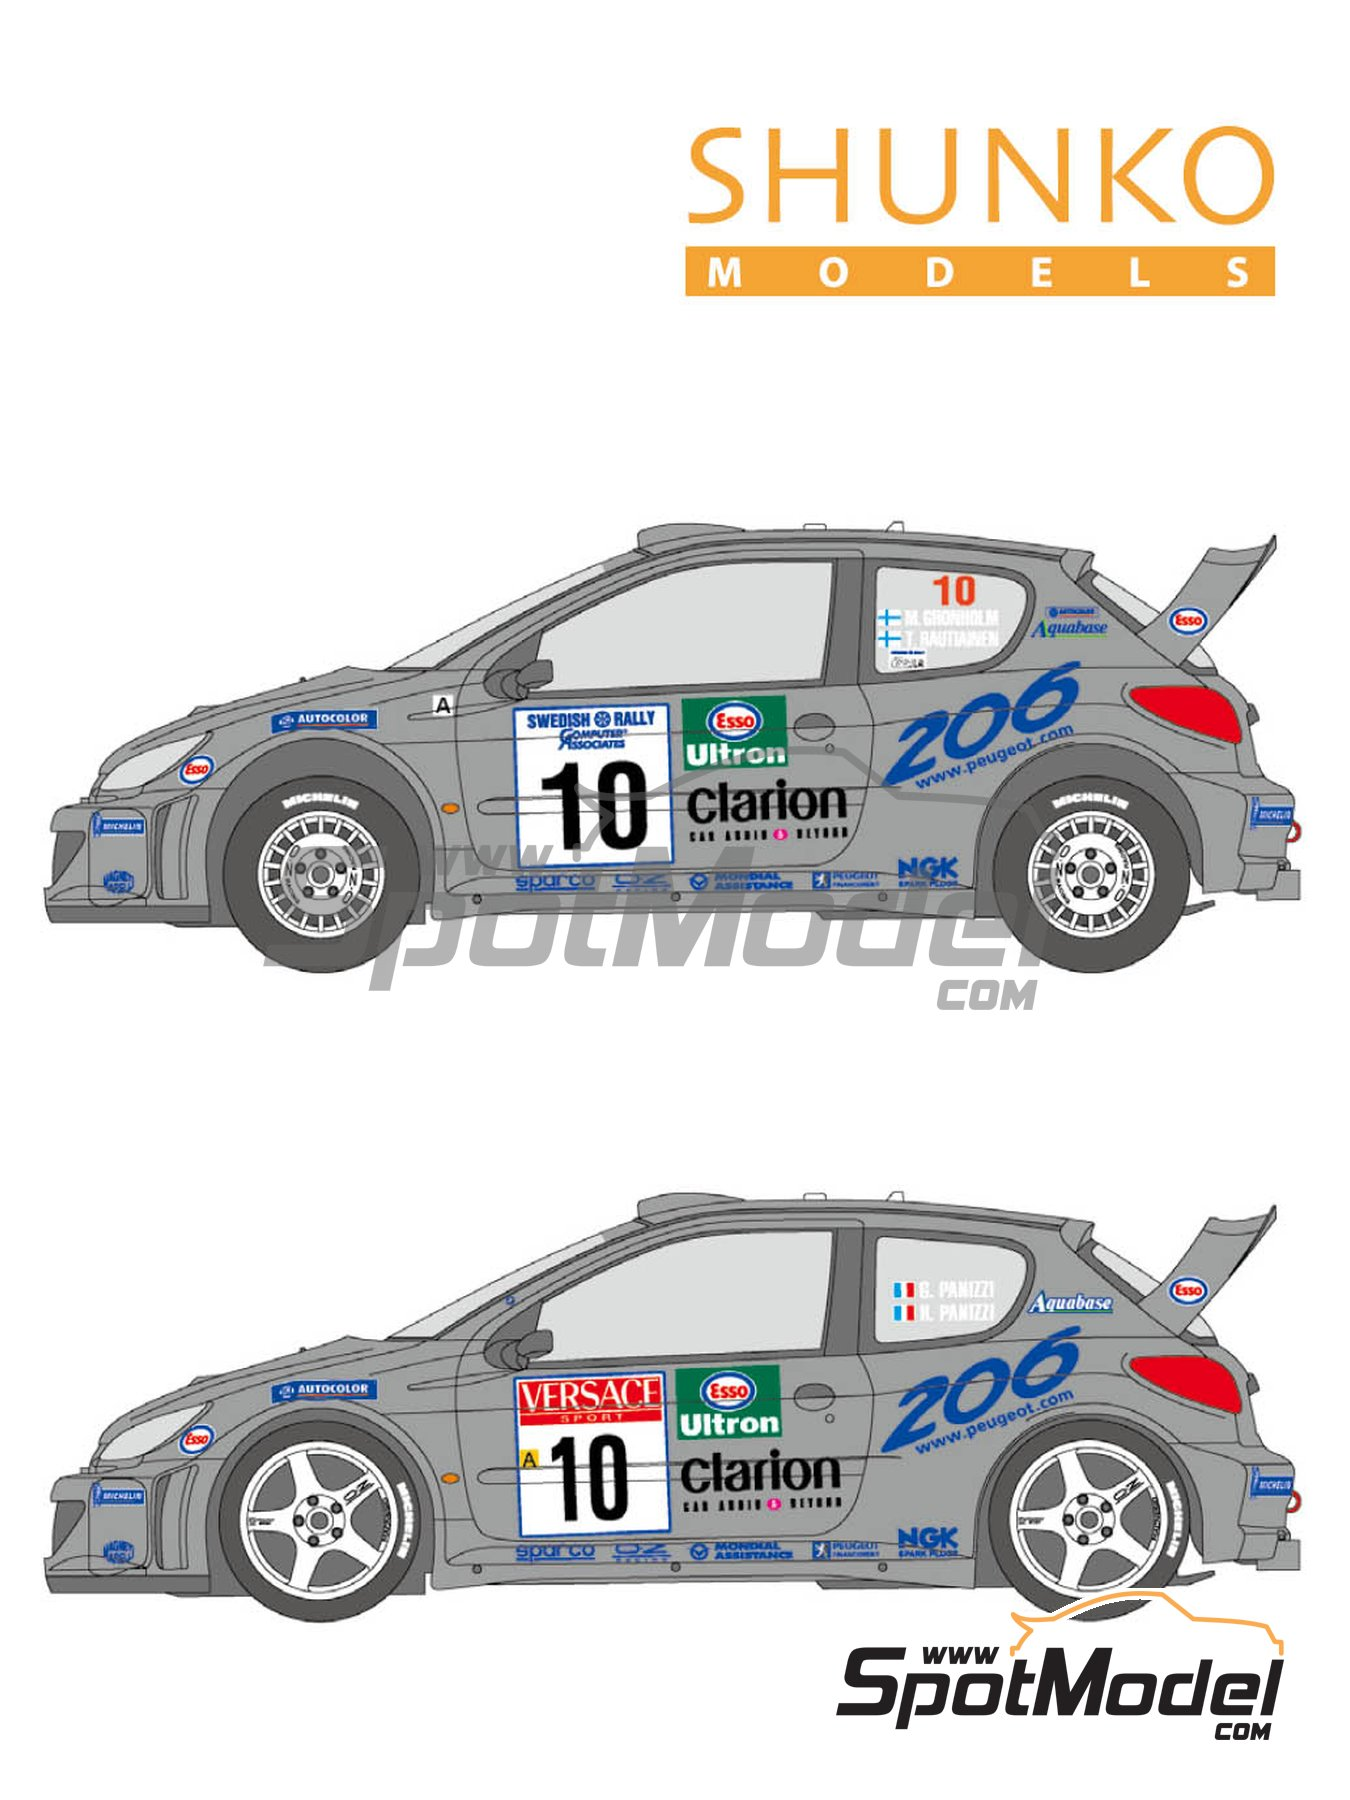 Peugeot 206 WRC Works Team - Sanremo Rally, Svezia Sweden Rally 2000 | Marking / livery in 1/24 scale manufactured by Shunko Models (ref. SHK-D349) image